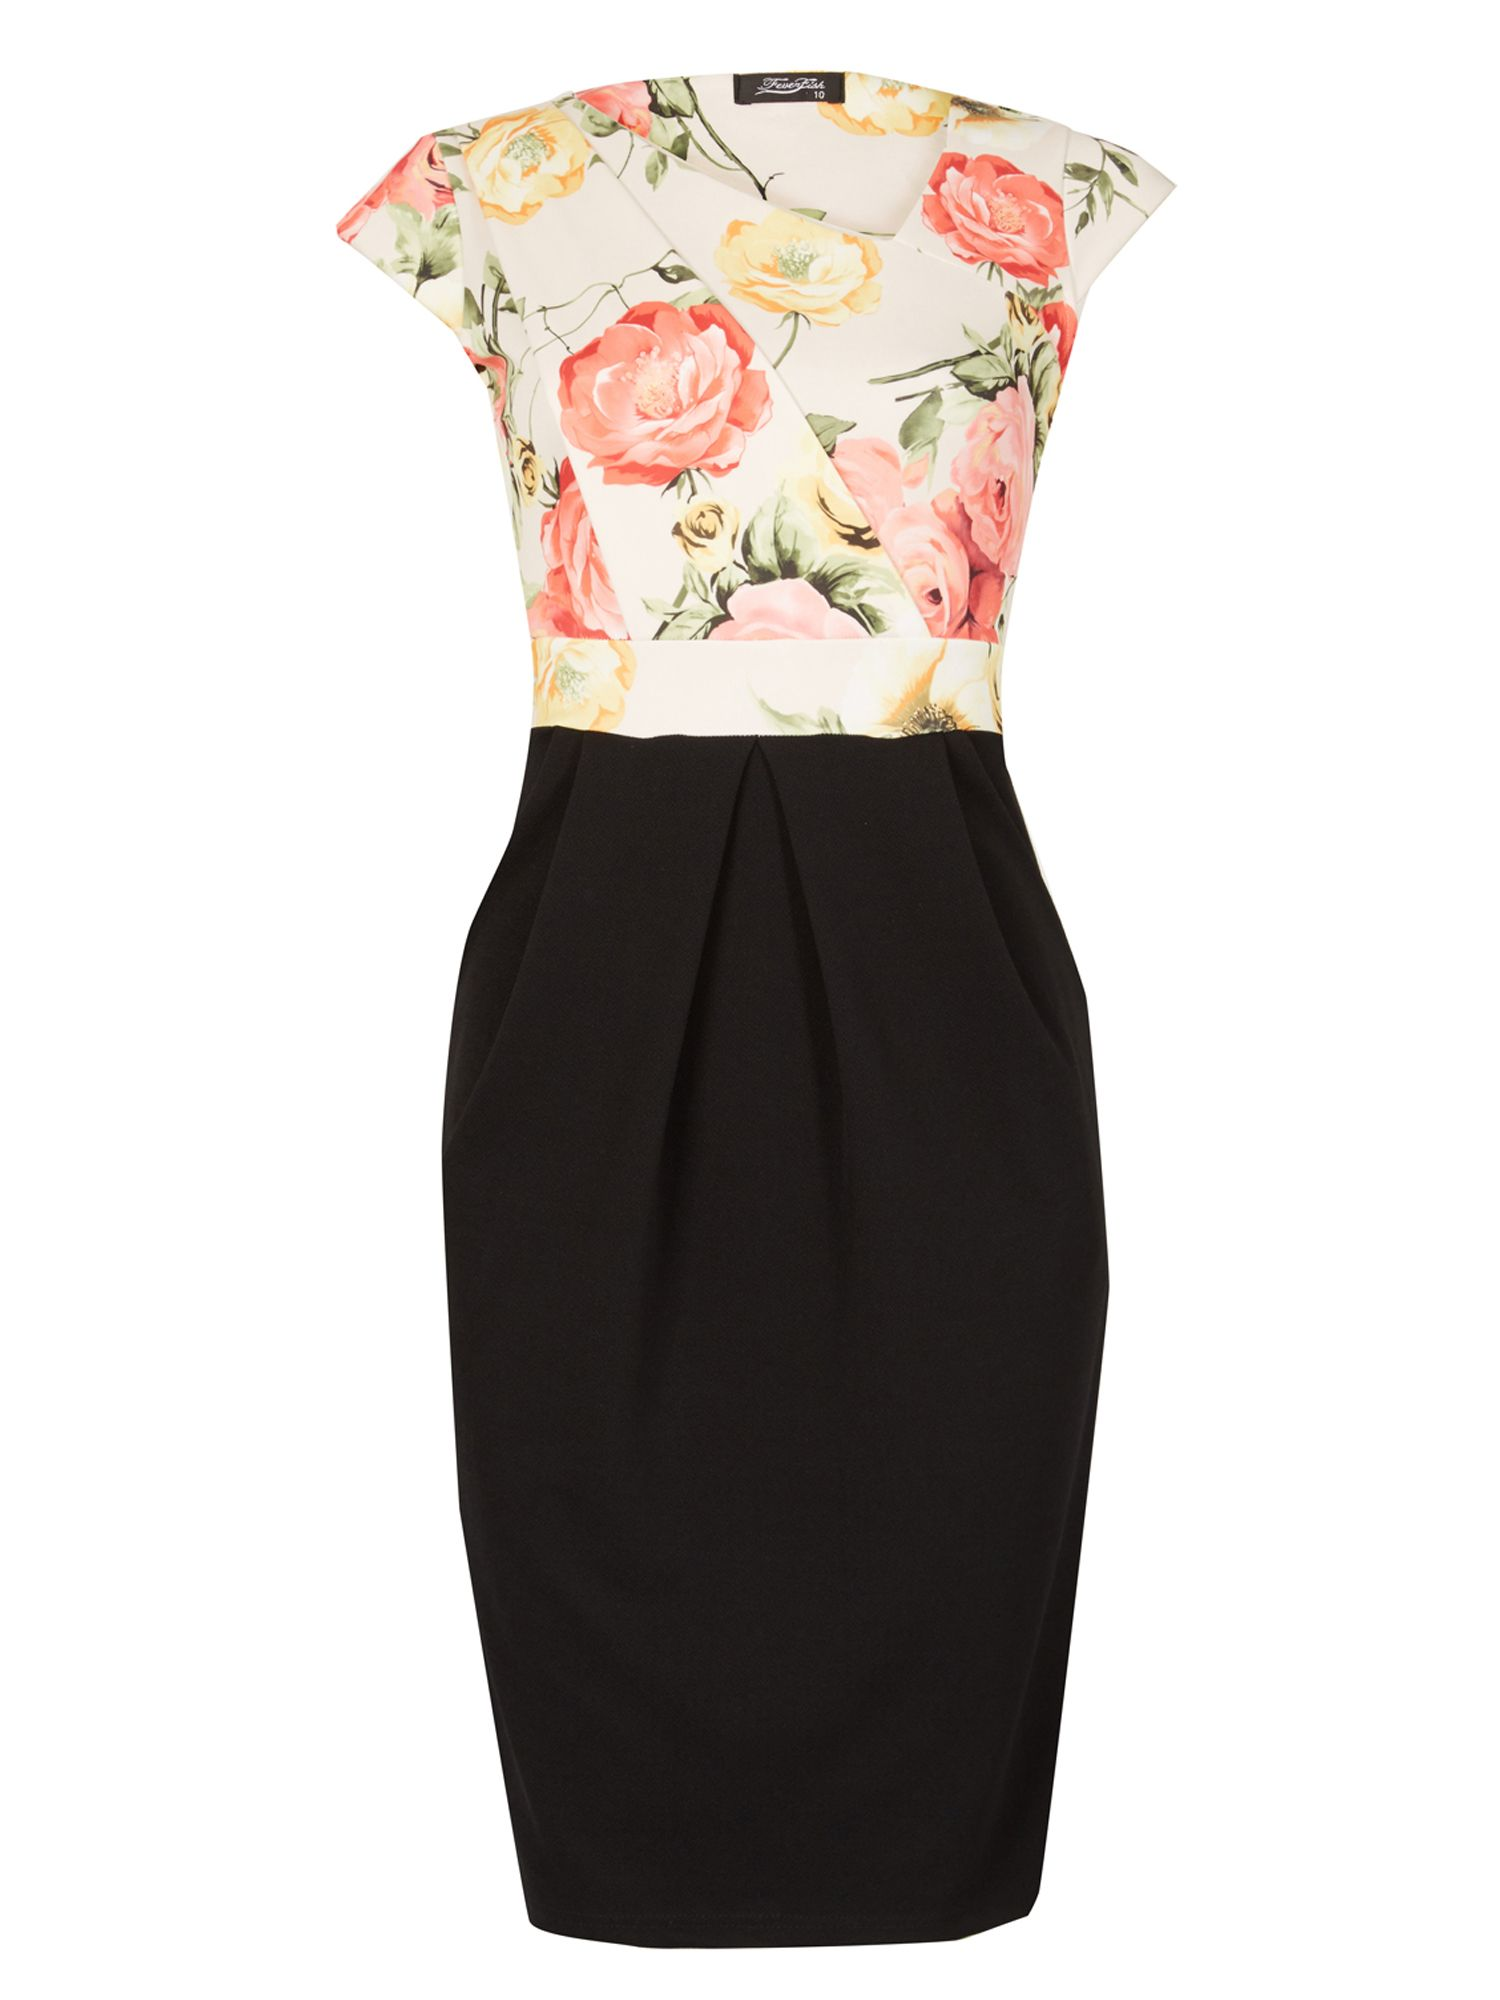 Feverfish Contrast Print Tulip Dress Black